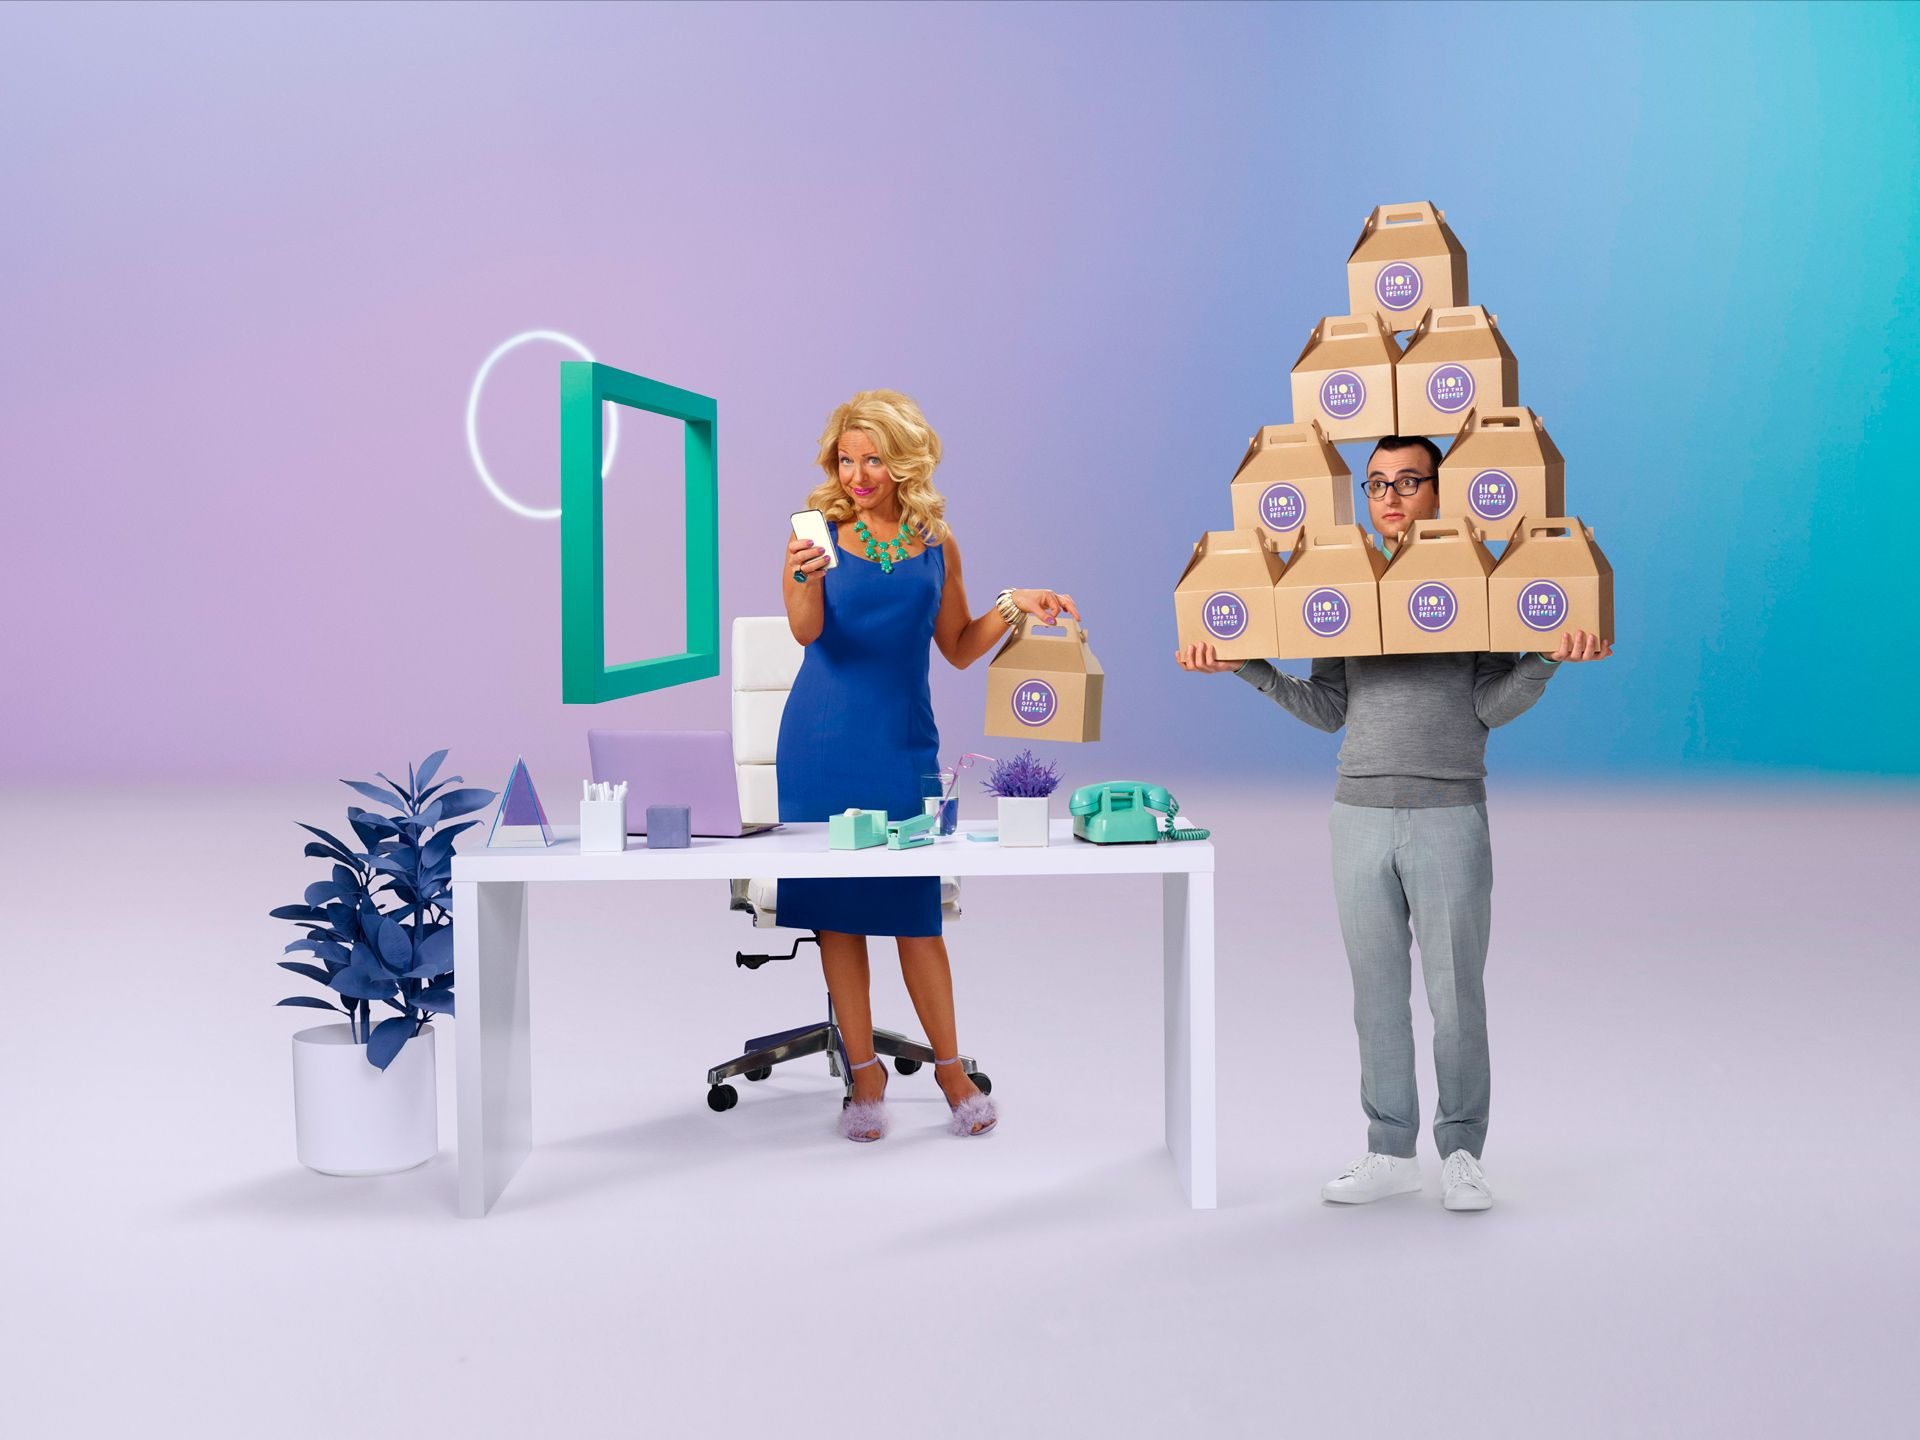 tanned up blonde women taking one lunch box from intern holding many lunch boxes by Simon Duhamel for Zelle and Huge Inc